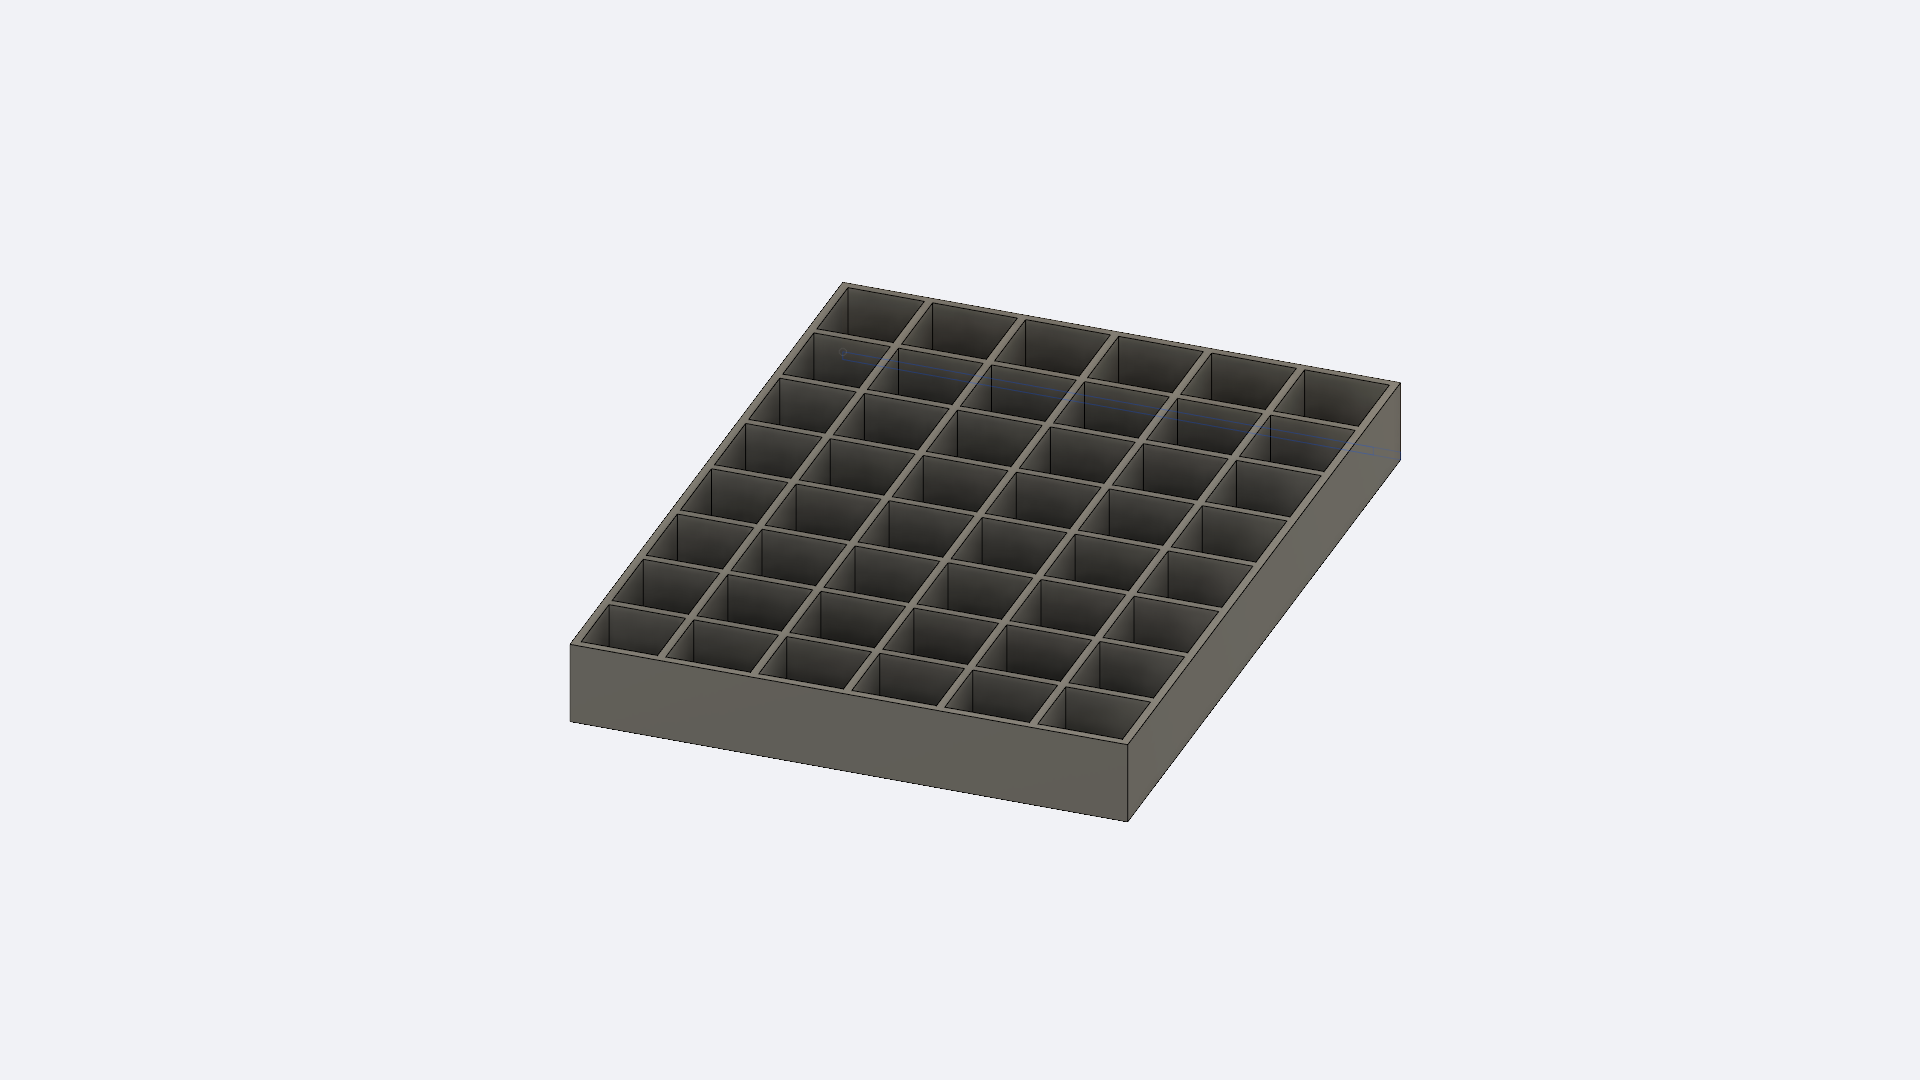 Picture of IC / COMPONENT STORAGE BOX UNDER 1 DOLLAR